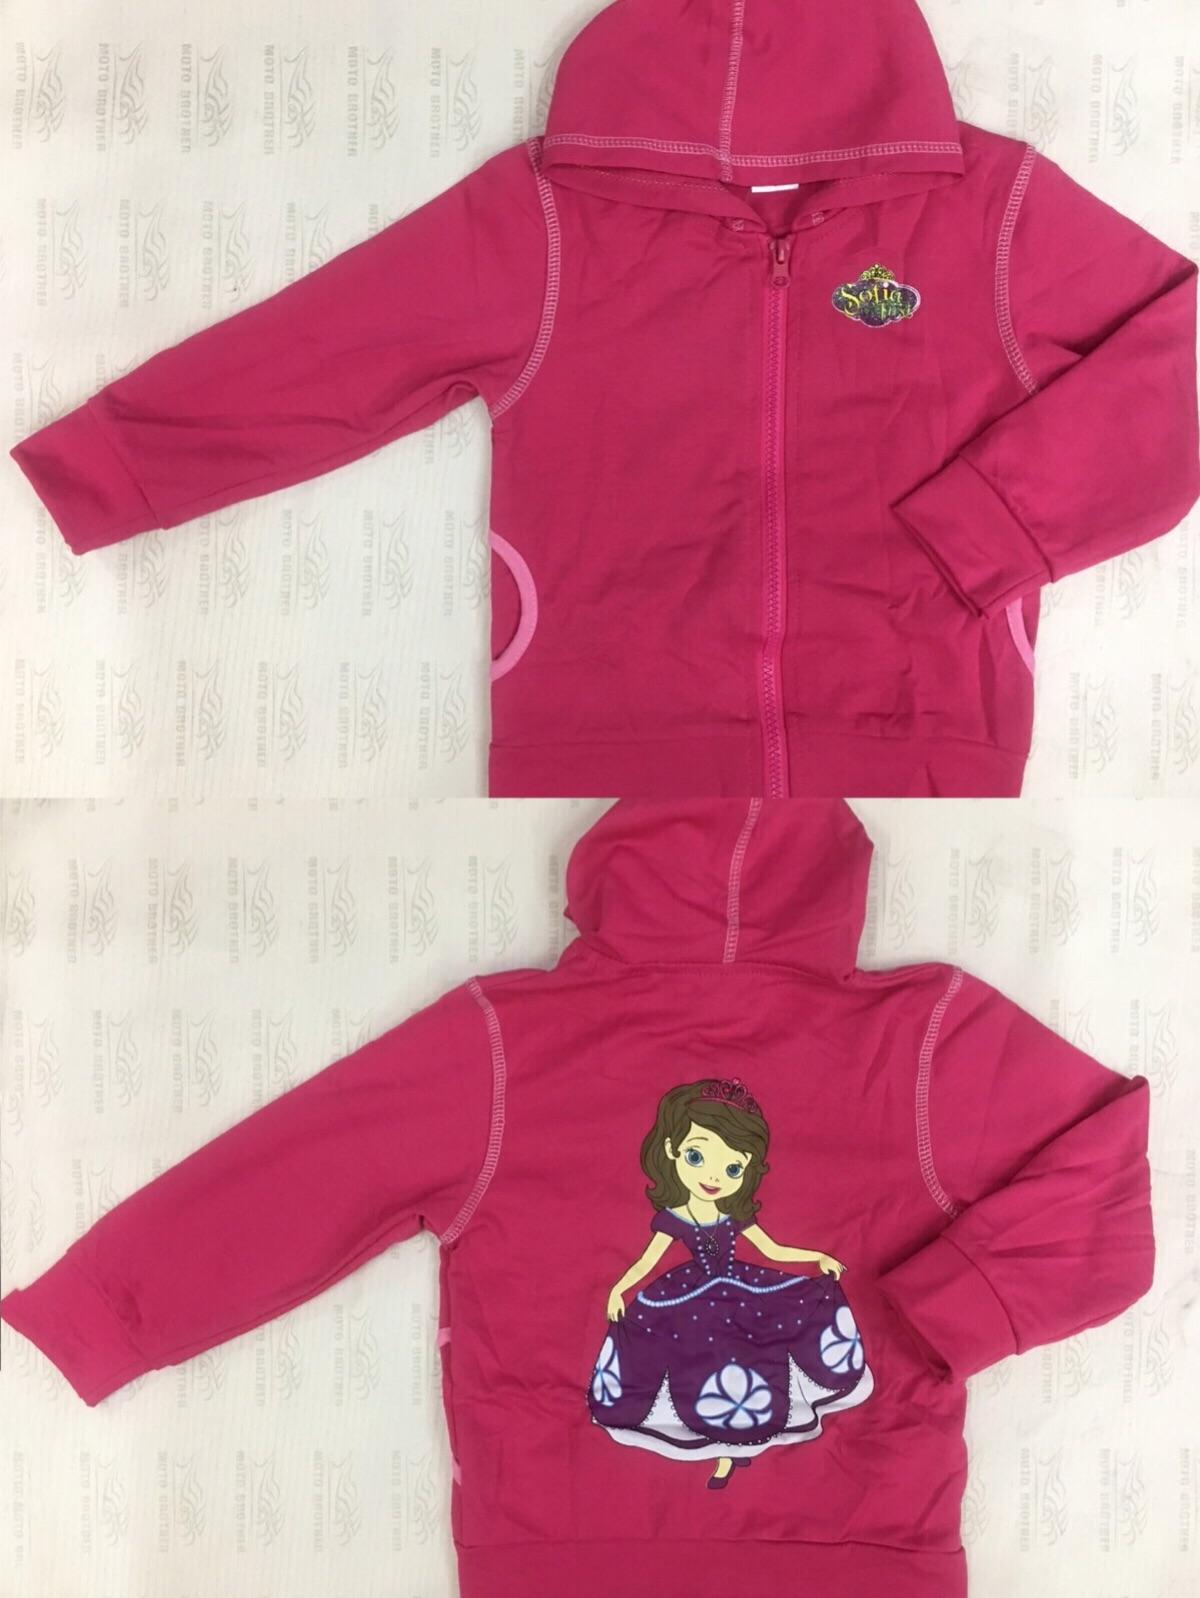 e74d1f02962a Girls Jackets for sale - Coats for Girls online brands